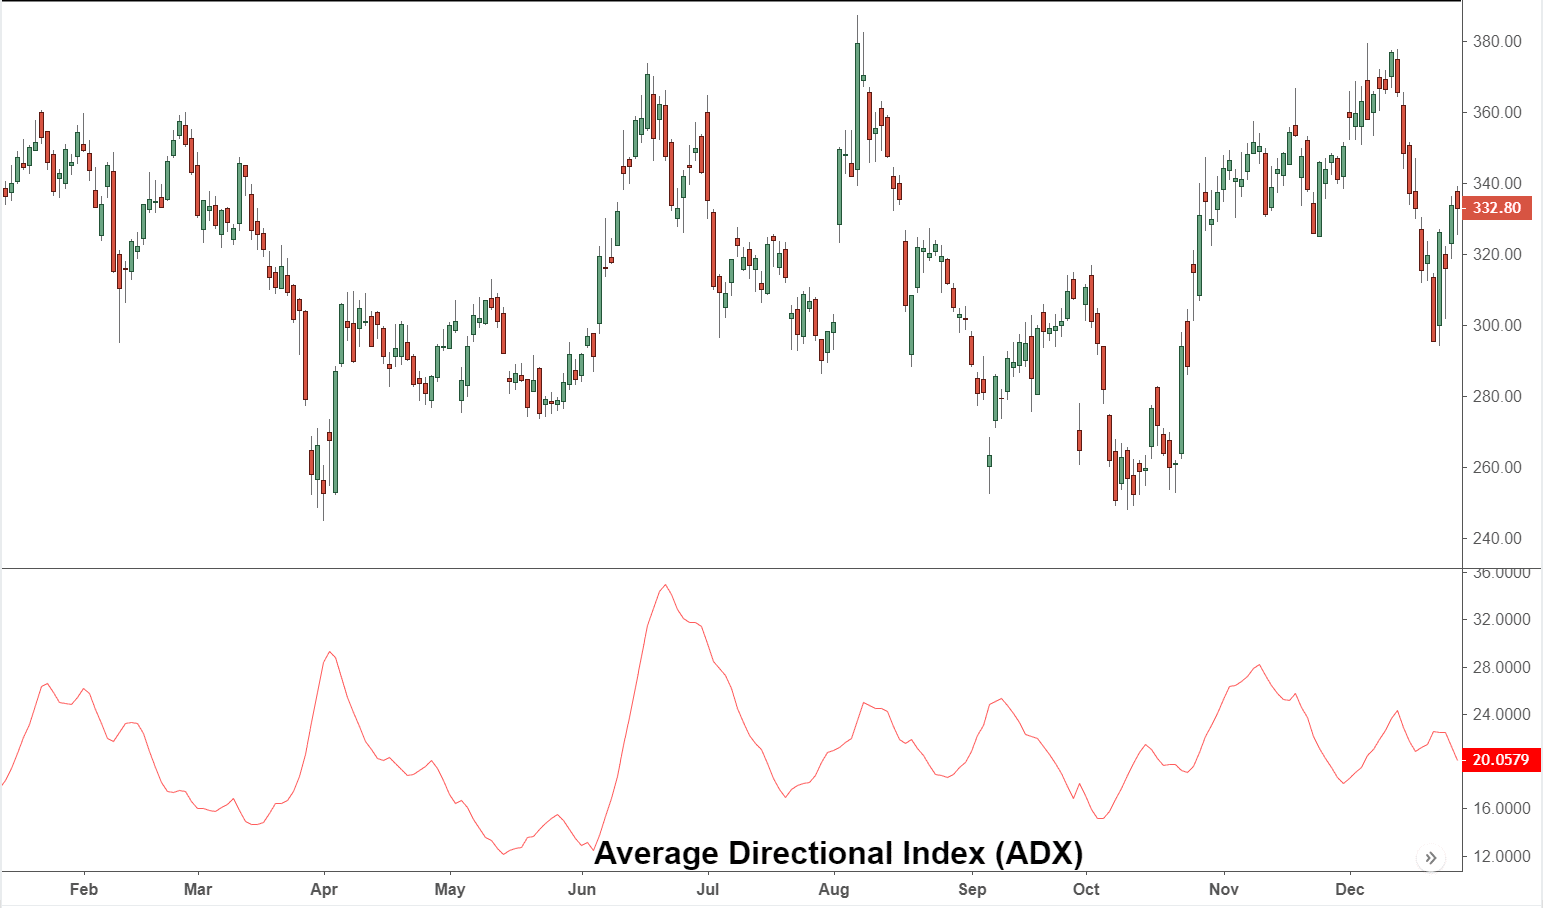 Average Directional Index - ADX Definition and Uses